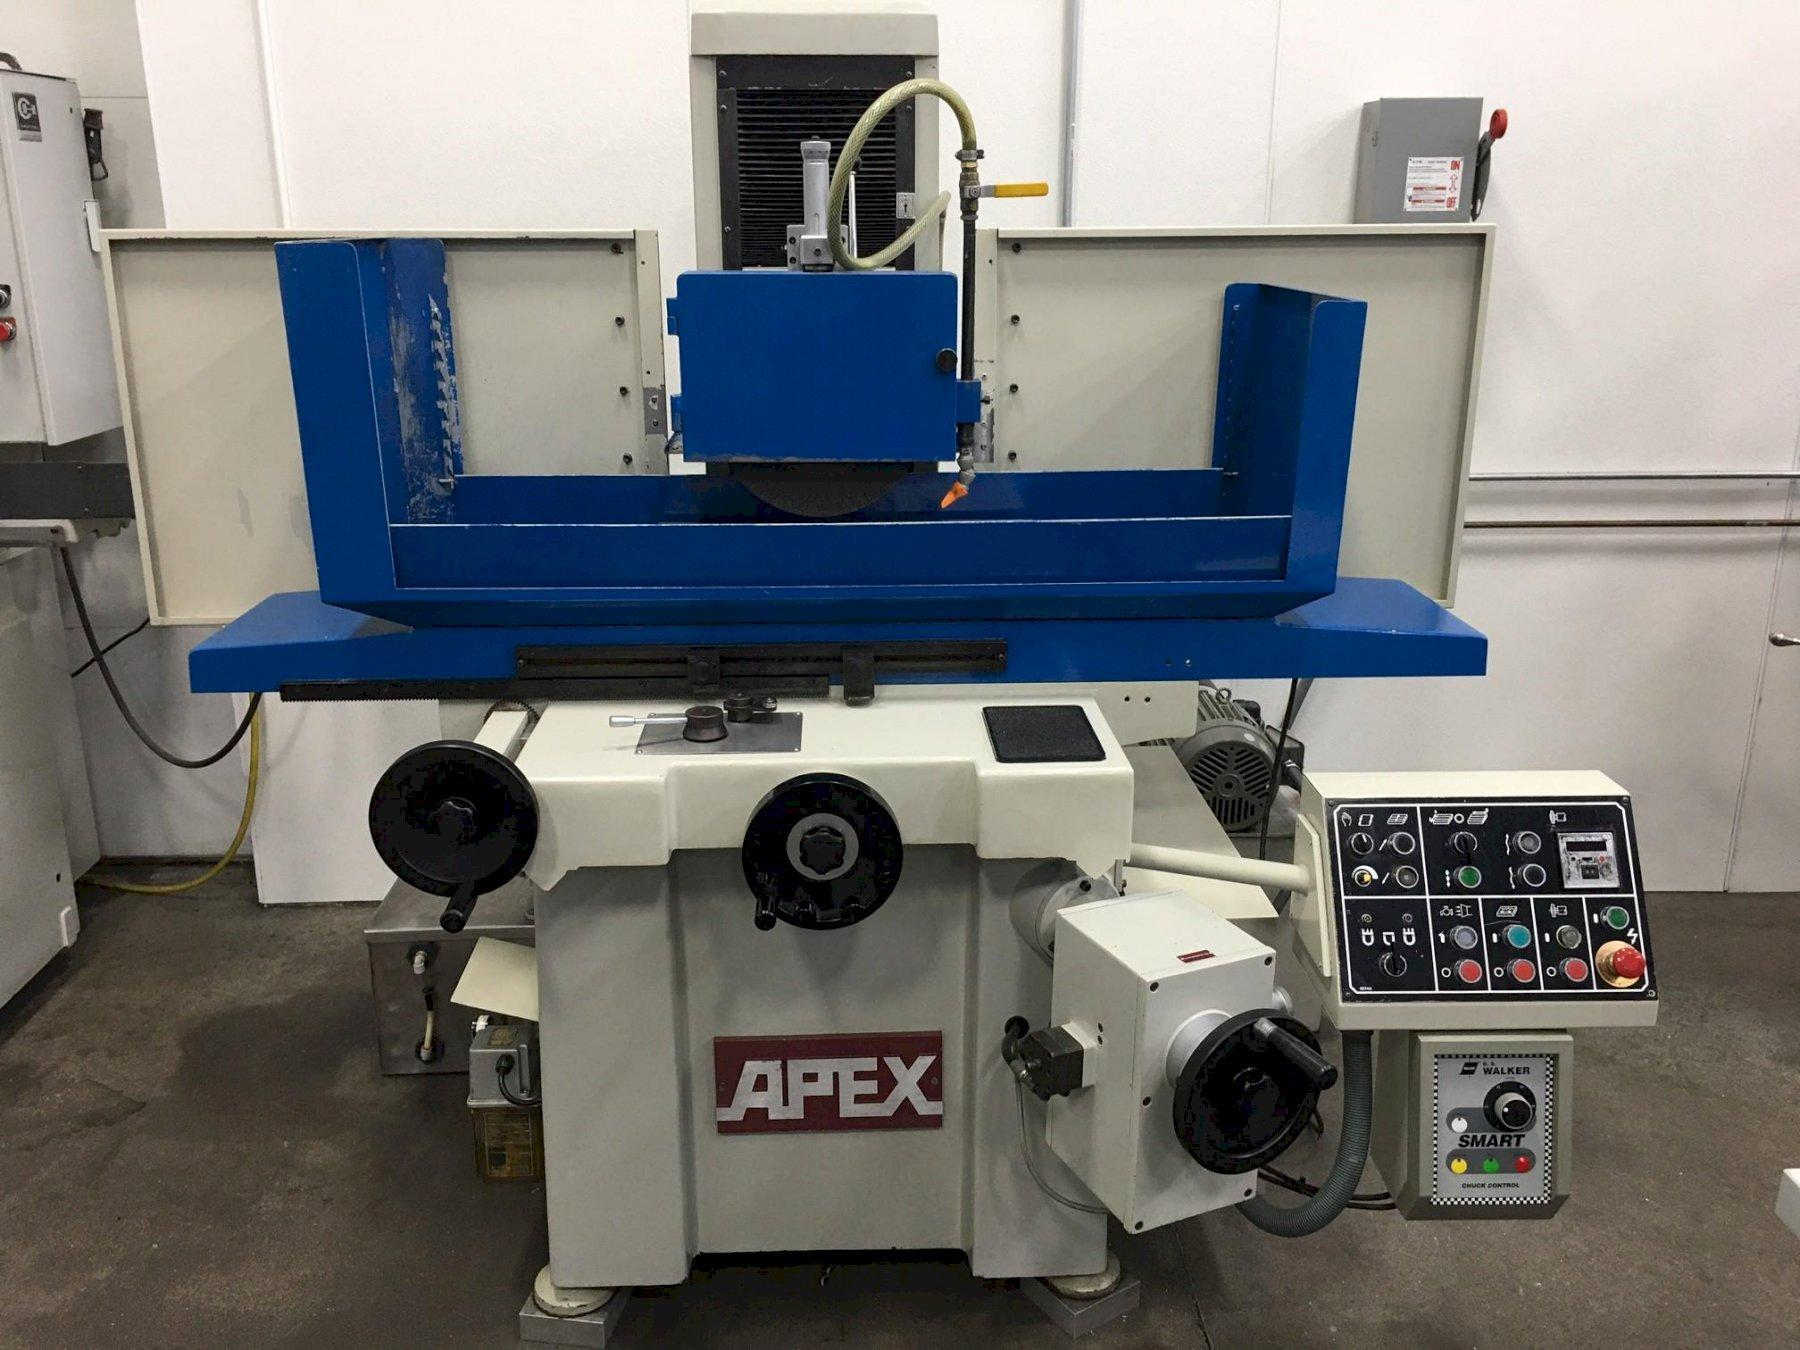 """12 x 24 - KENT (APEX) KGS-63AHD 3-Axis Automatic Hydraulic Surface Grinder, 12"""" x 24"""" Capacity, Over Wheel Dresser, 5HP, New 1994"""